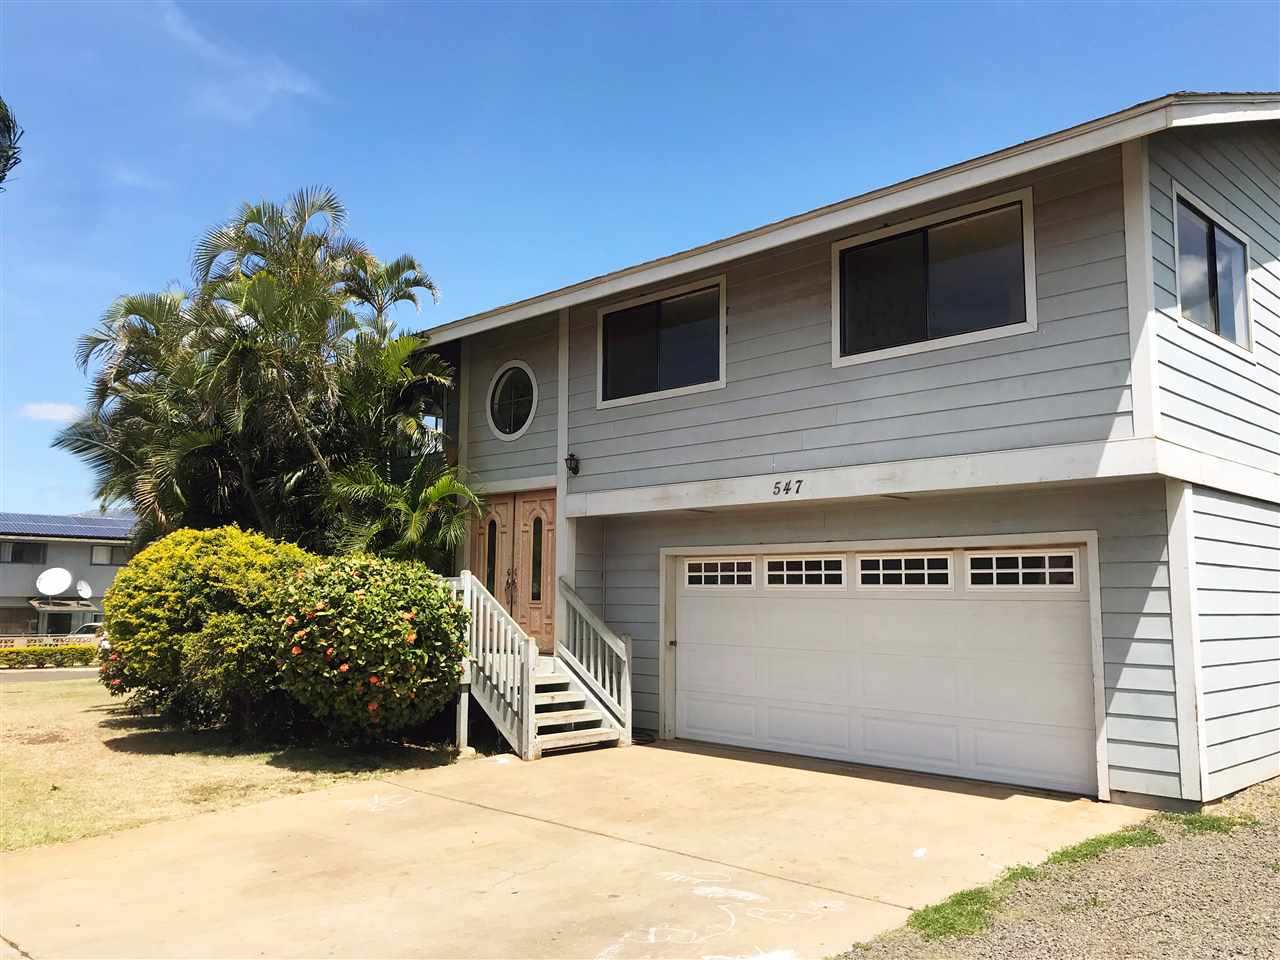 547 Kaiwahine St Property Photo - Kihei, HI real estate listing